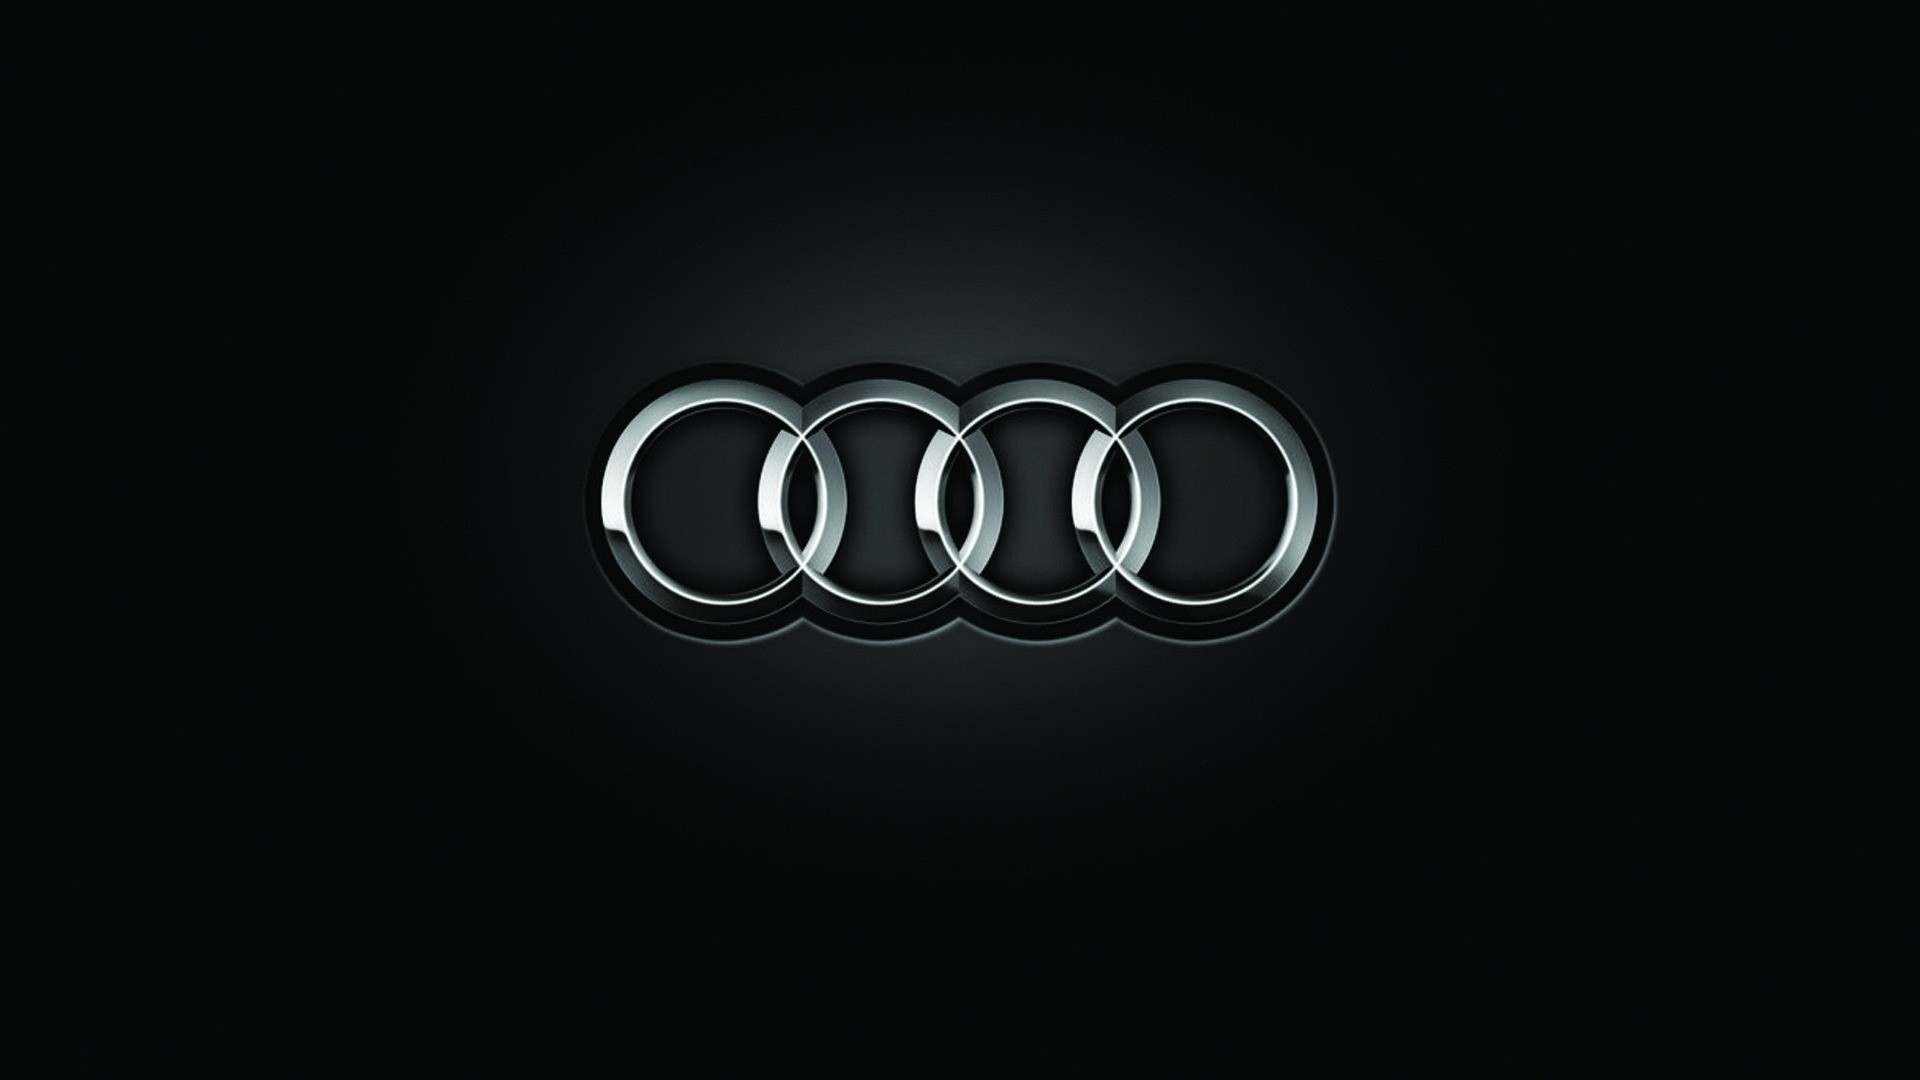 1600x900 Audi 1600x900 Resolution Hd 4k Wallpapers Images